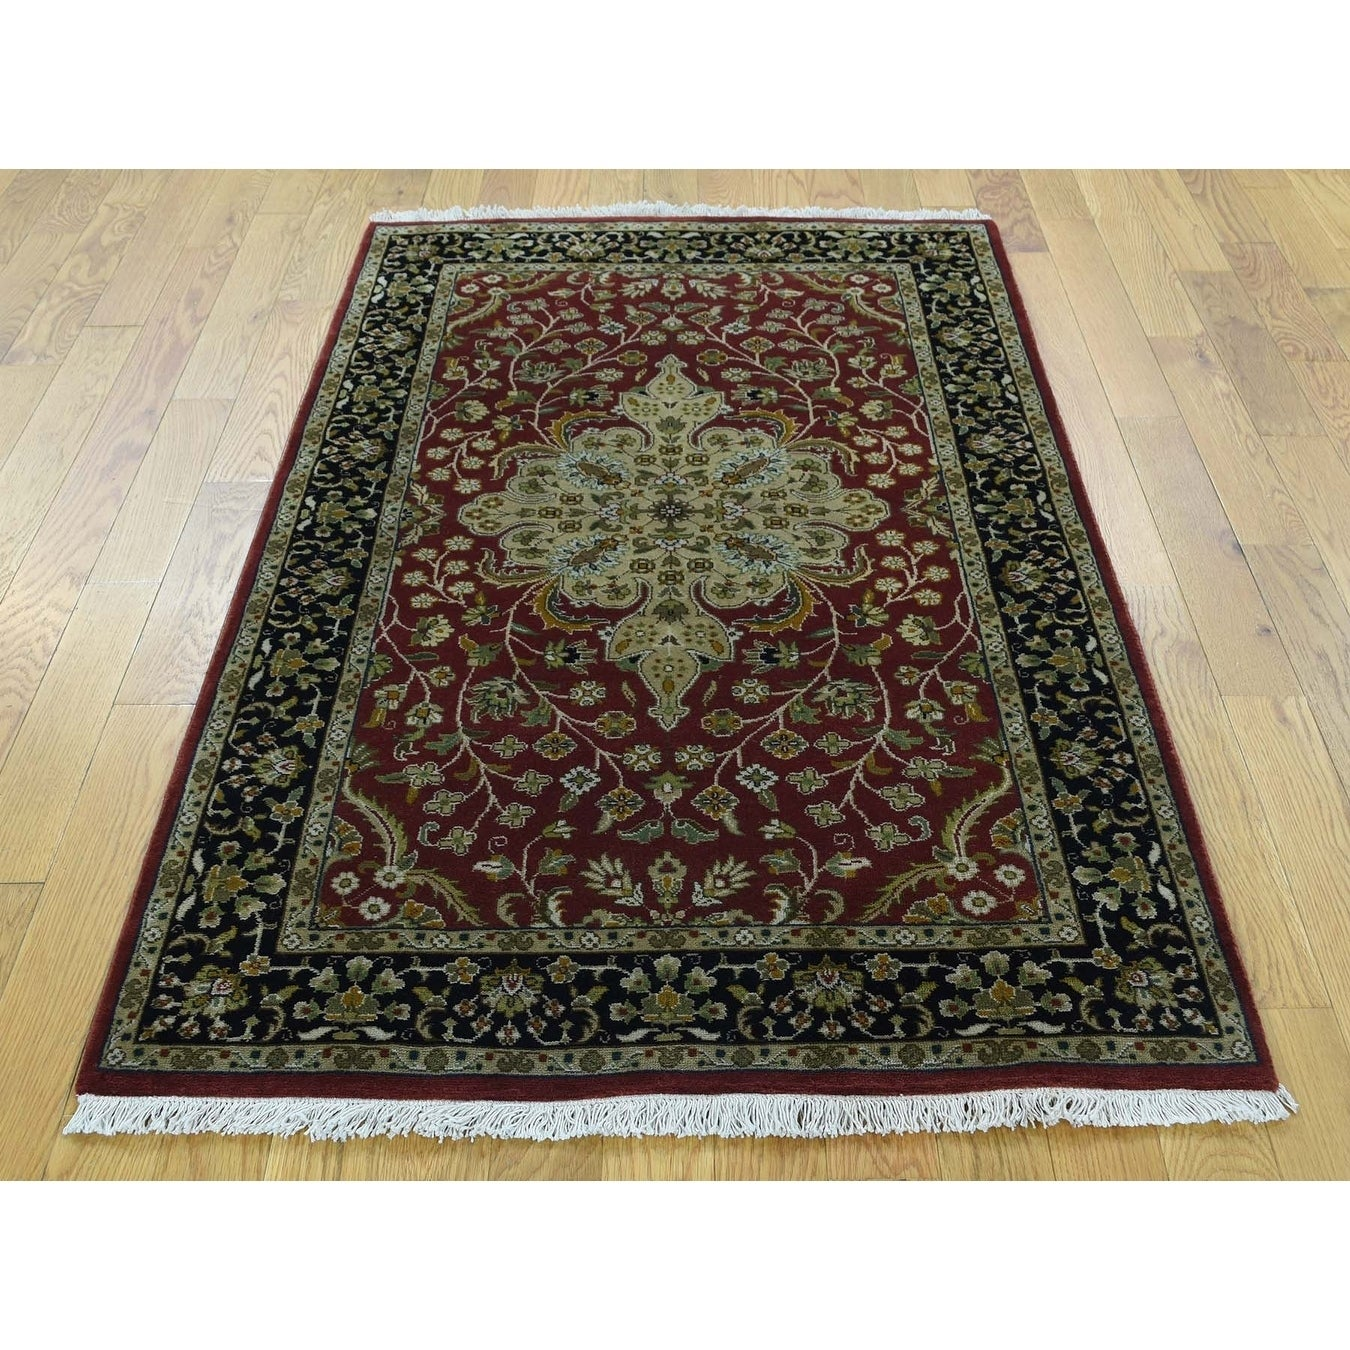 Hand Knotted Red Persian with New Zealand Wool Oriental Rug - 3 x 5